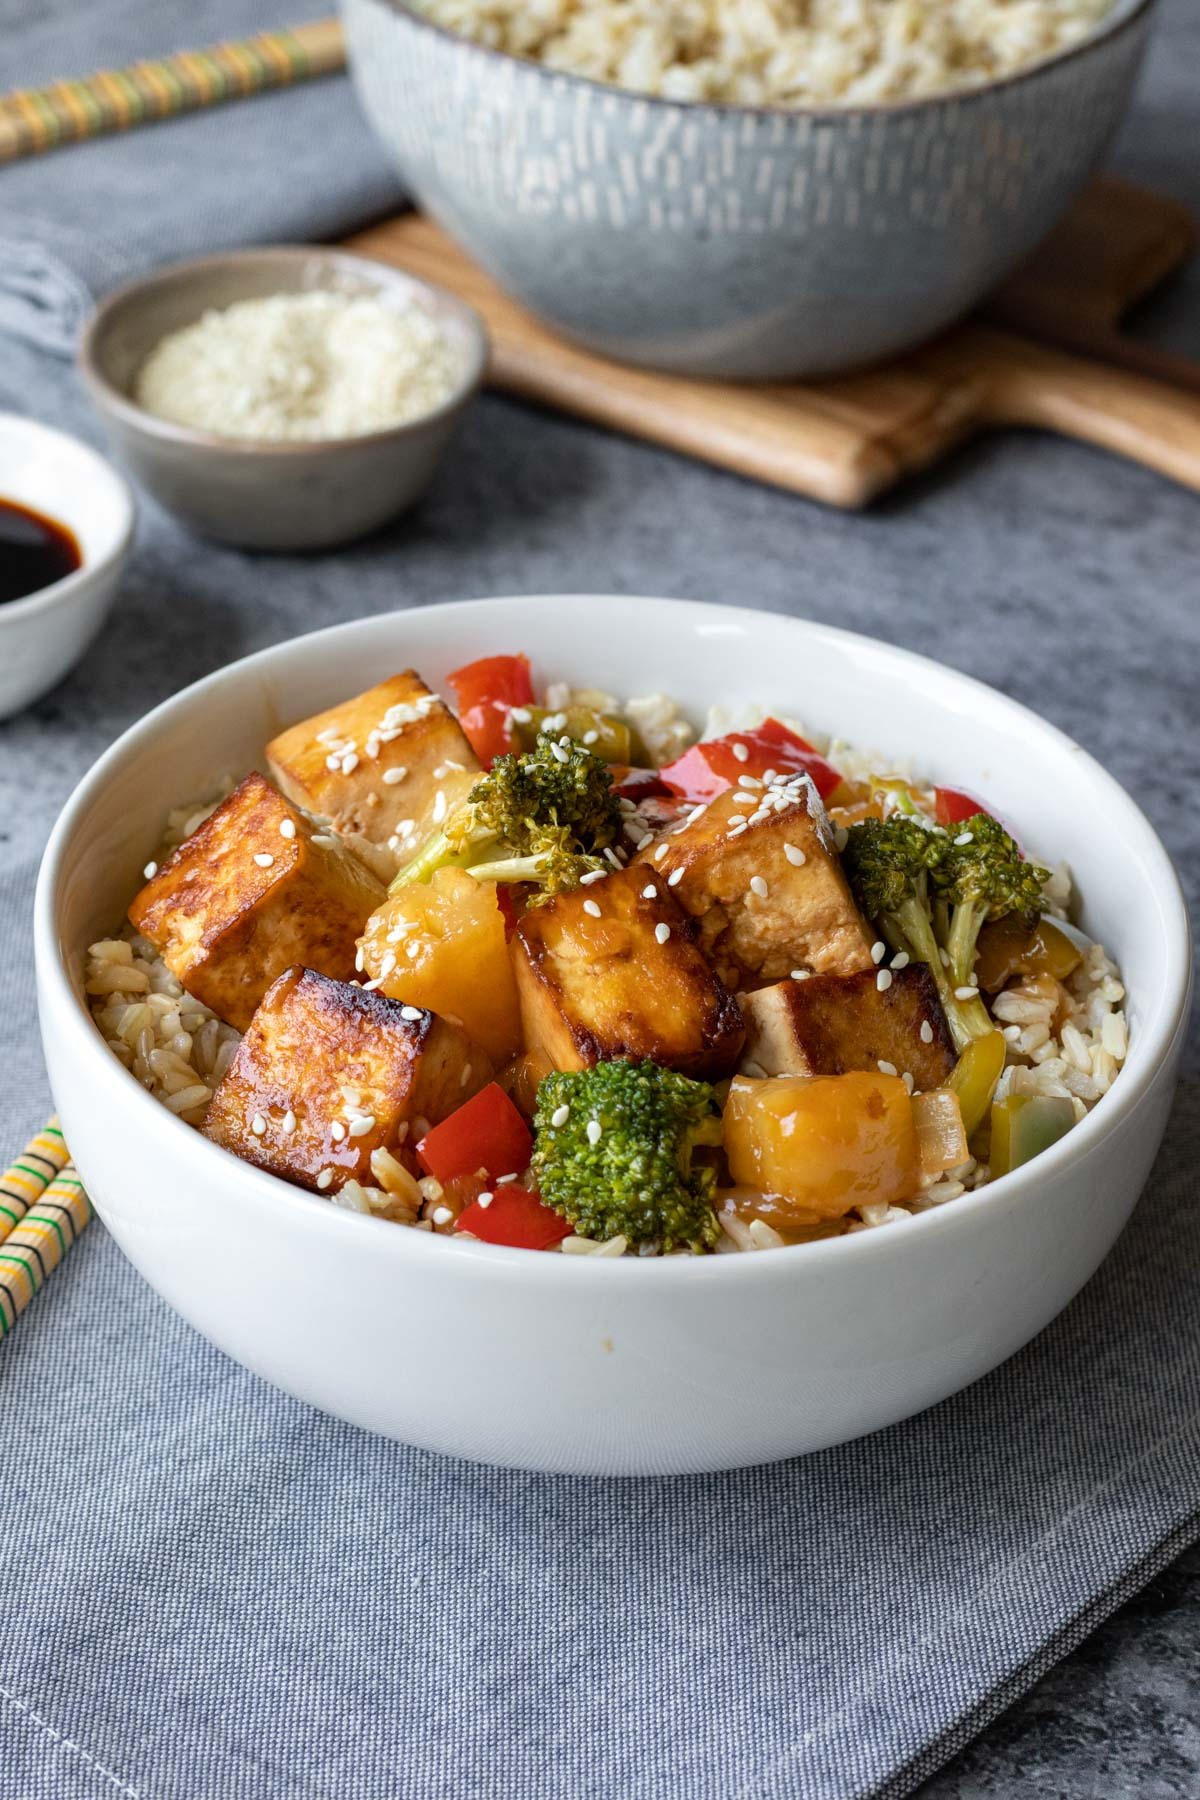 tofu, broccoli, peppers, sweet and sour sauce, rice in a white bowl